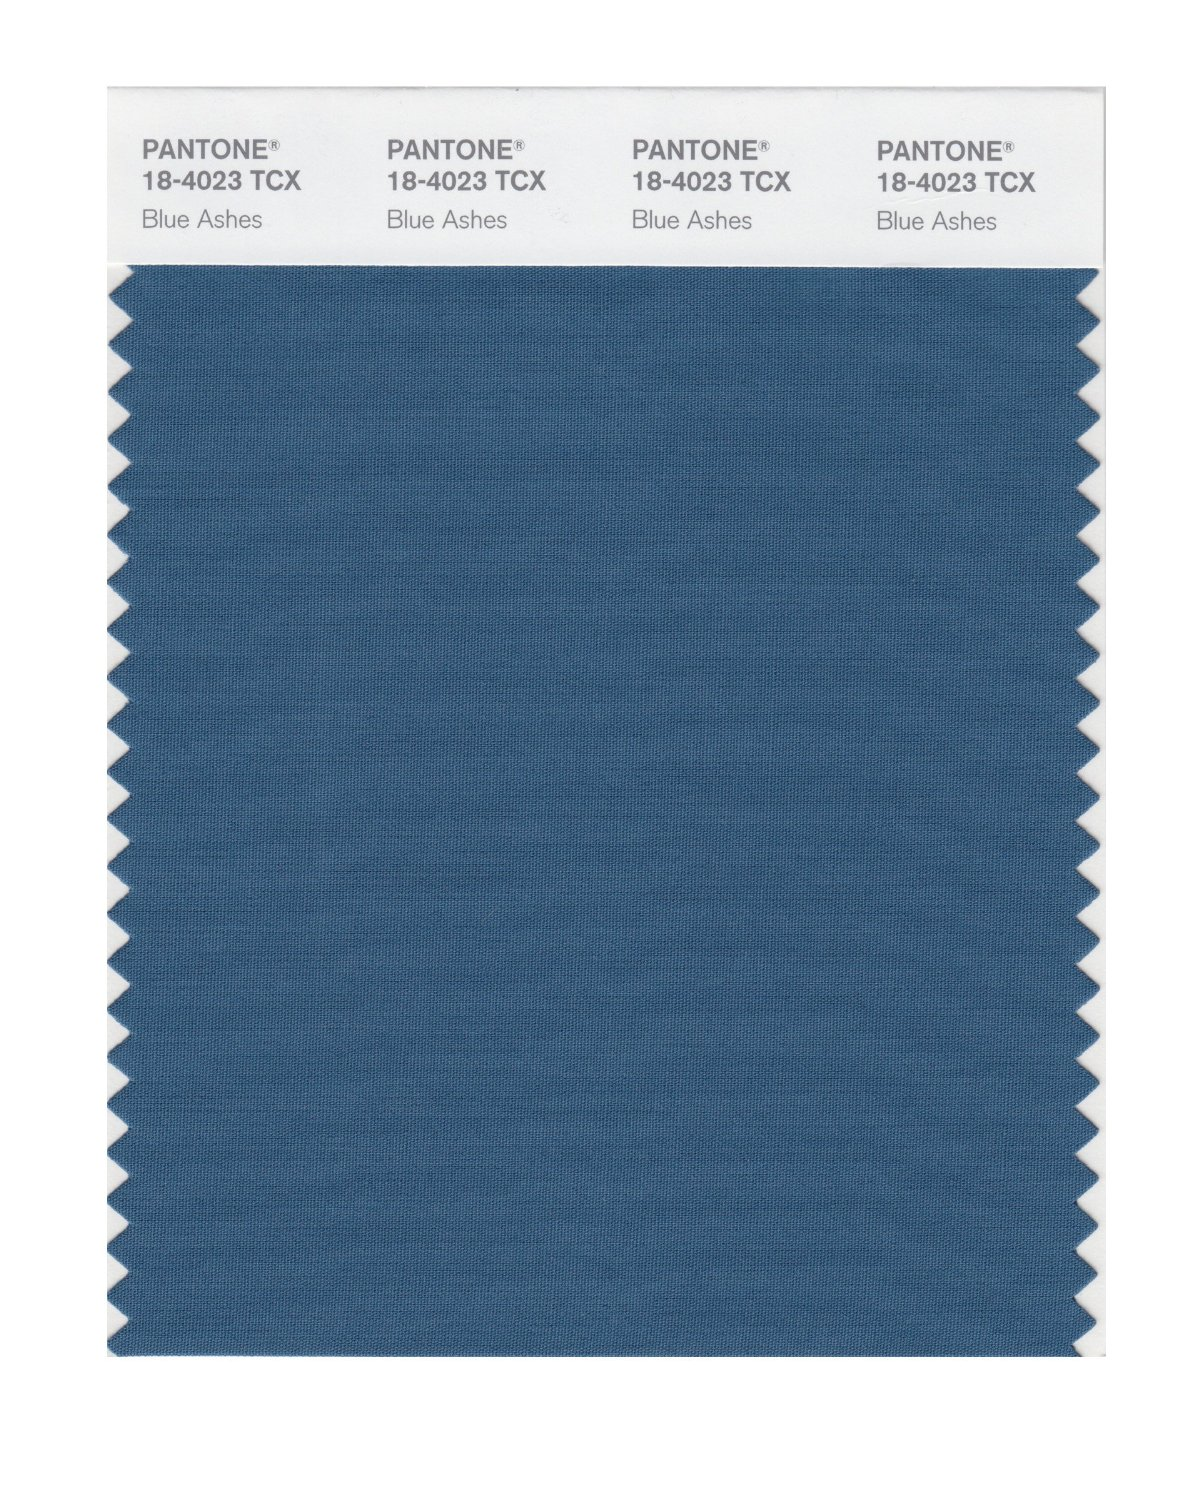 Pantone Smart Swatch 18-4023 Blue Ashes